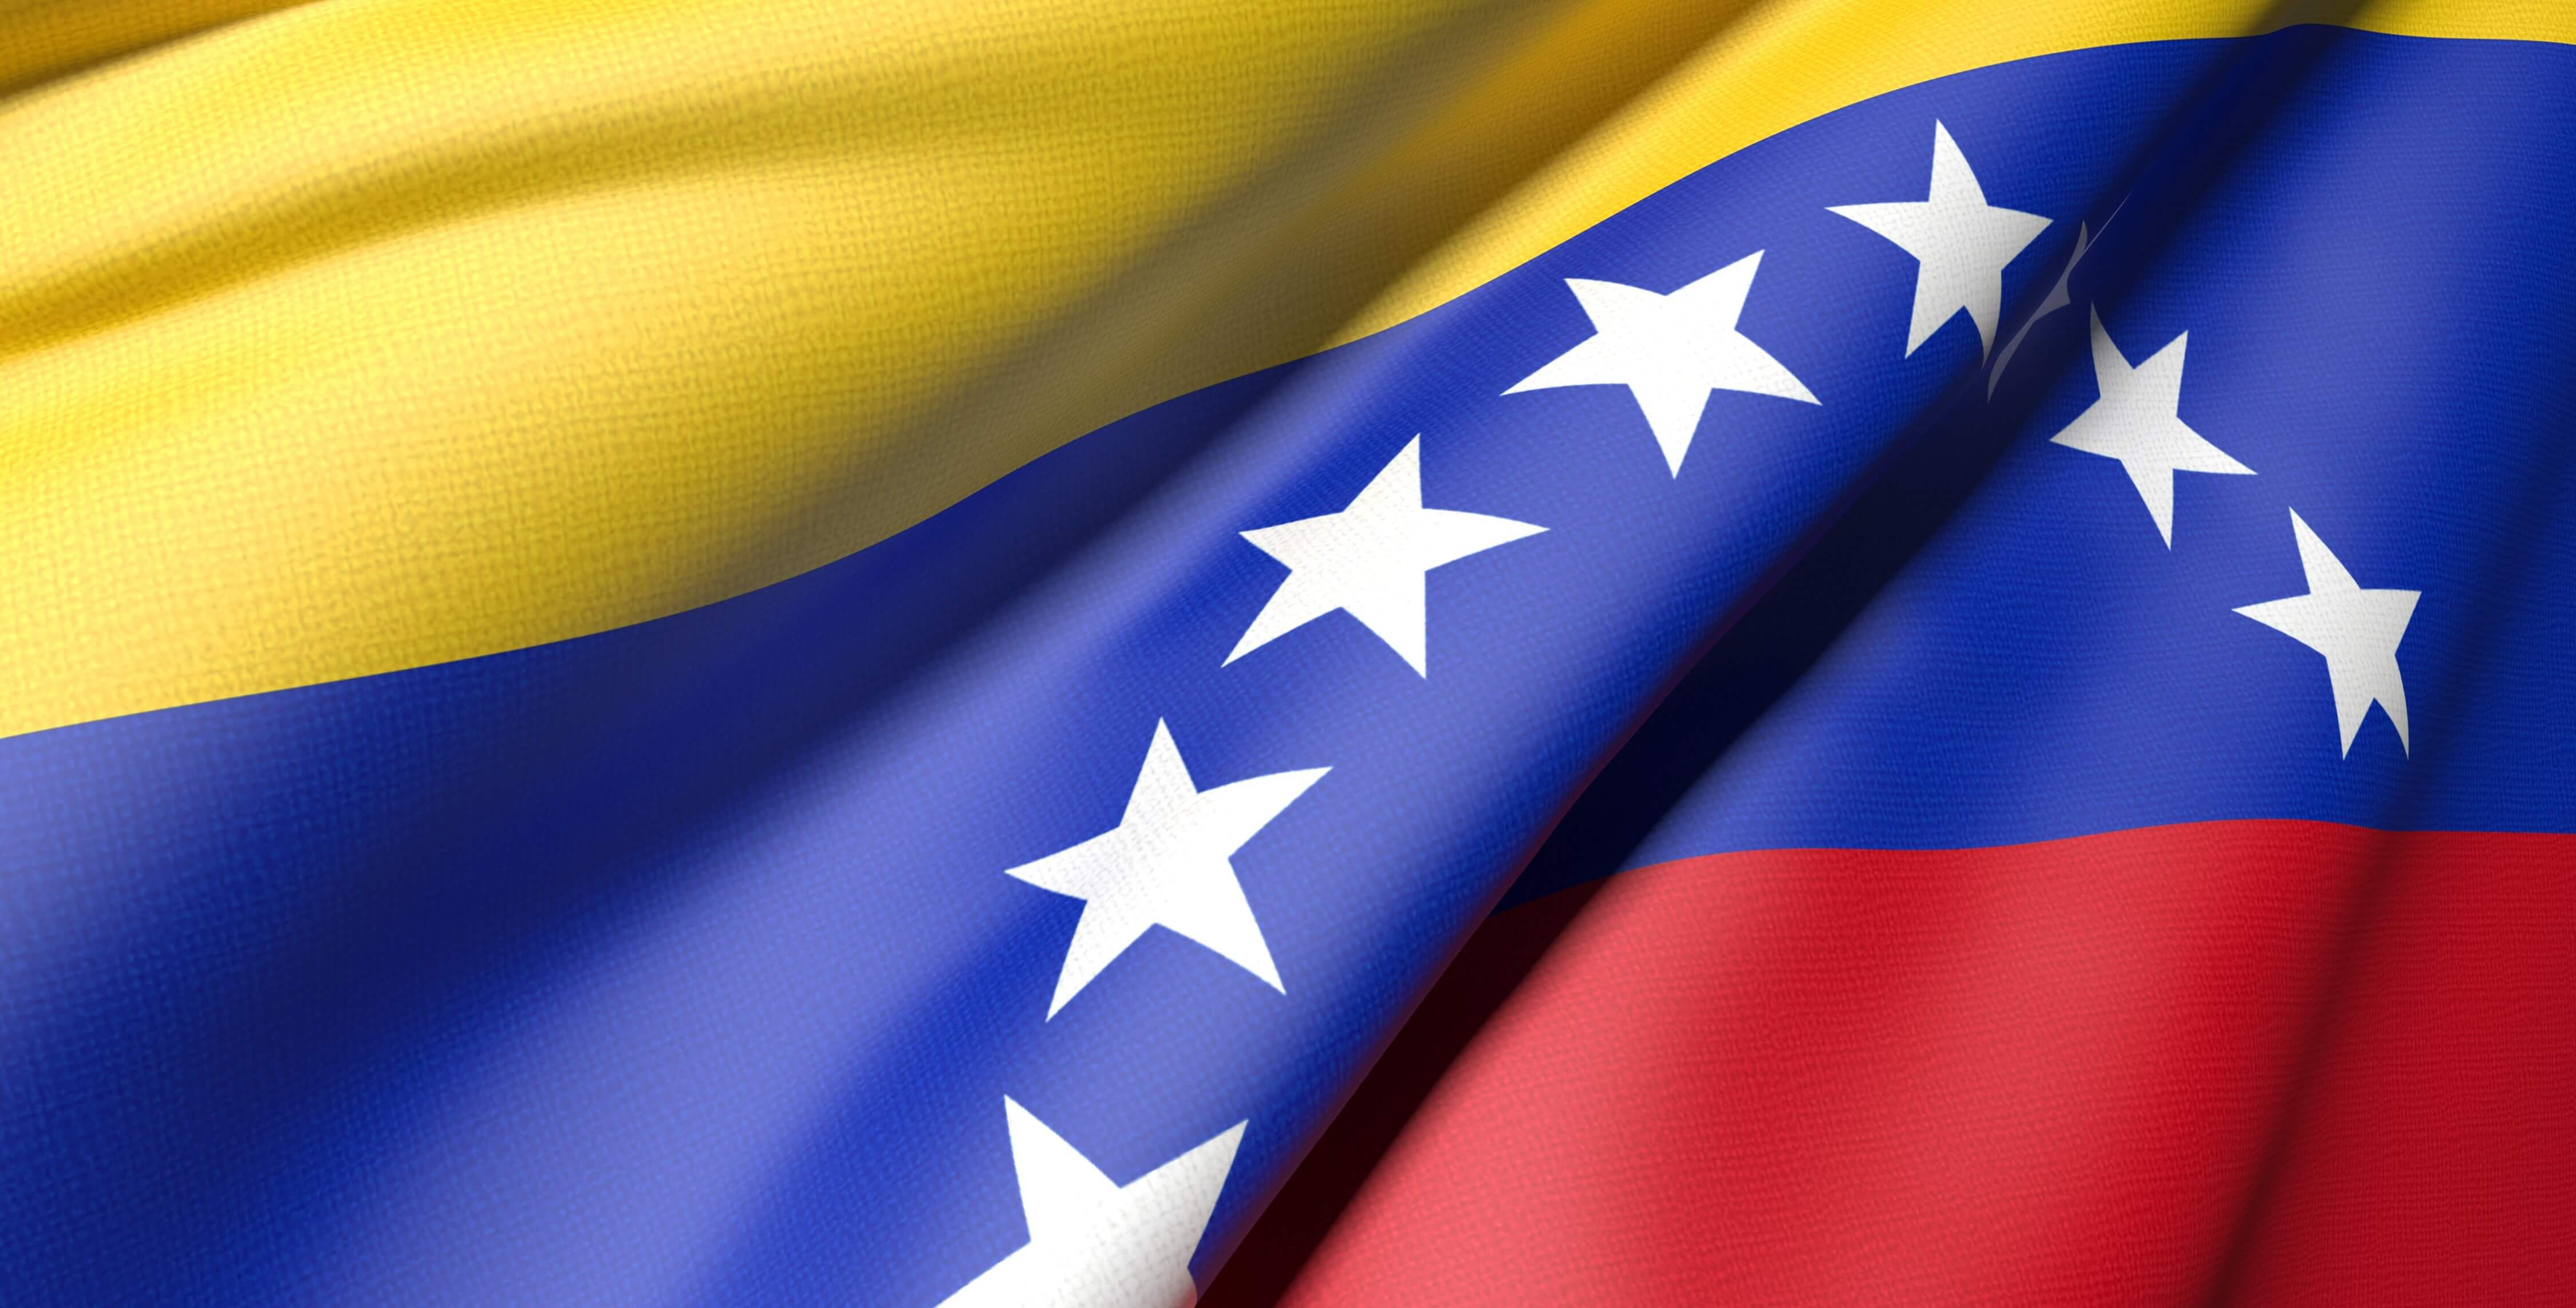 Venezuela Confirms a National Cryptocurrency